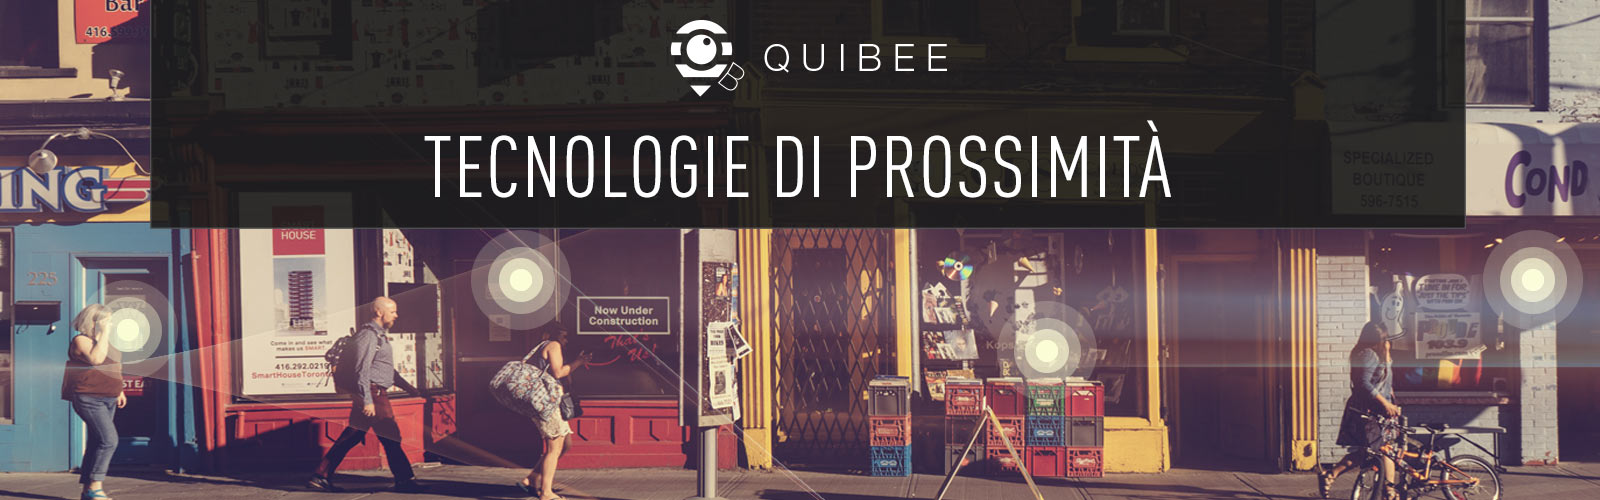 Proximity marketing: le tecnologie di prossimità